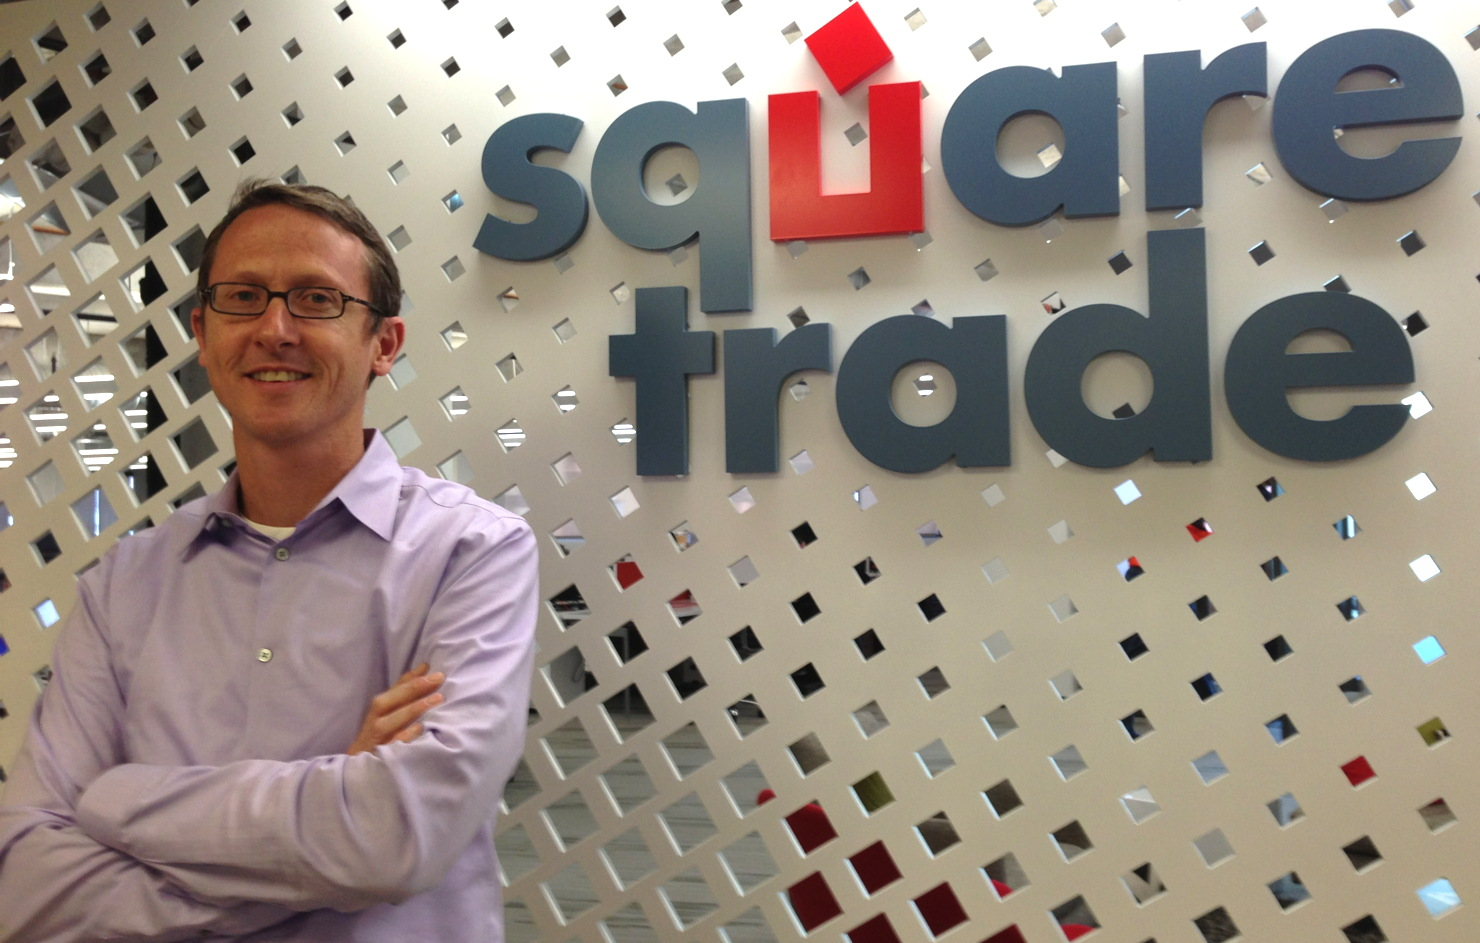 Steve Abernethy, co-founder and CEO of SquareTrade